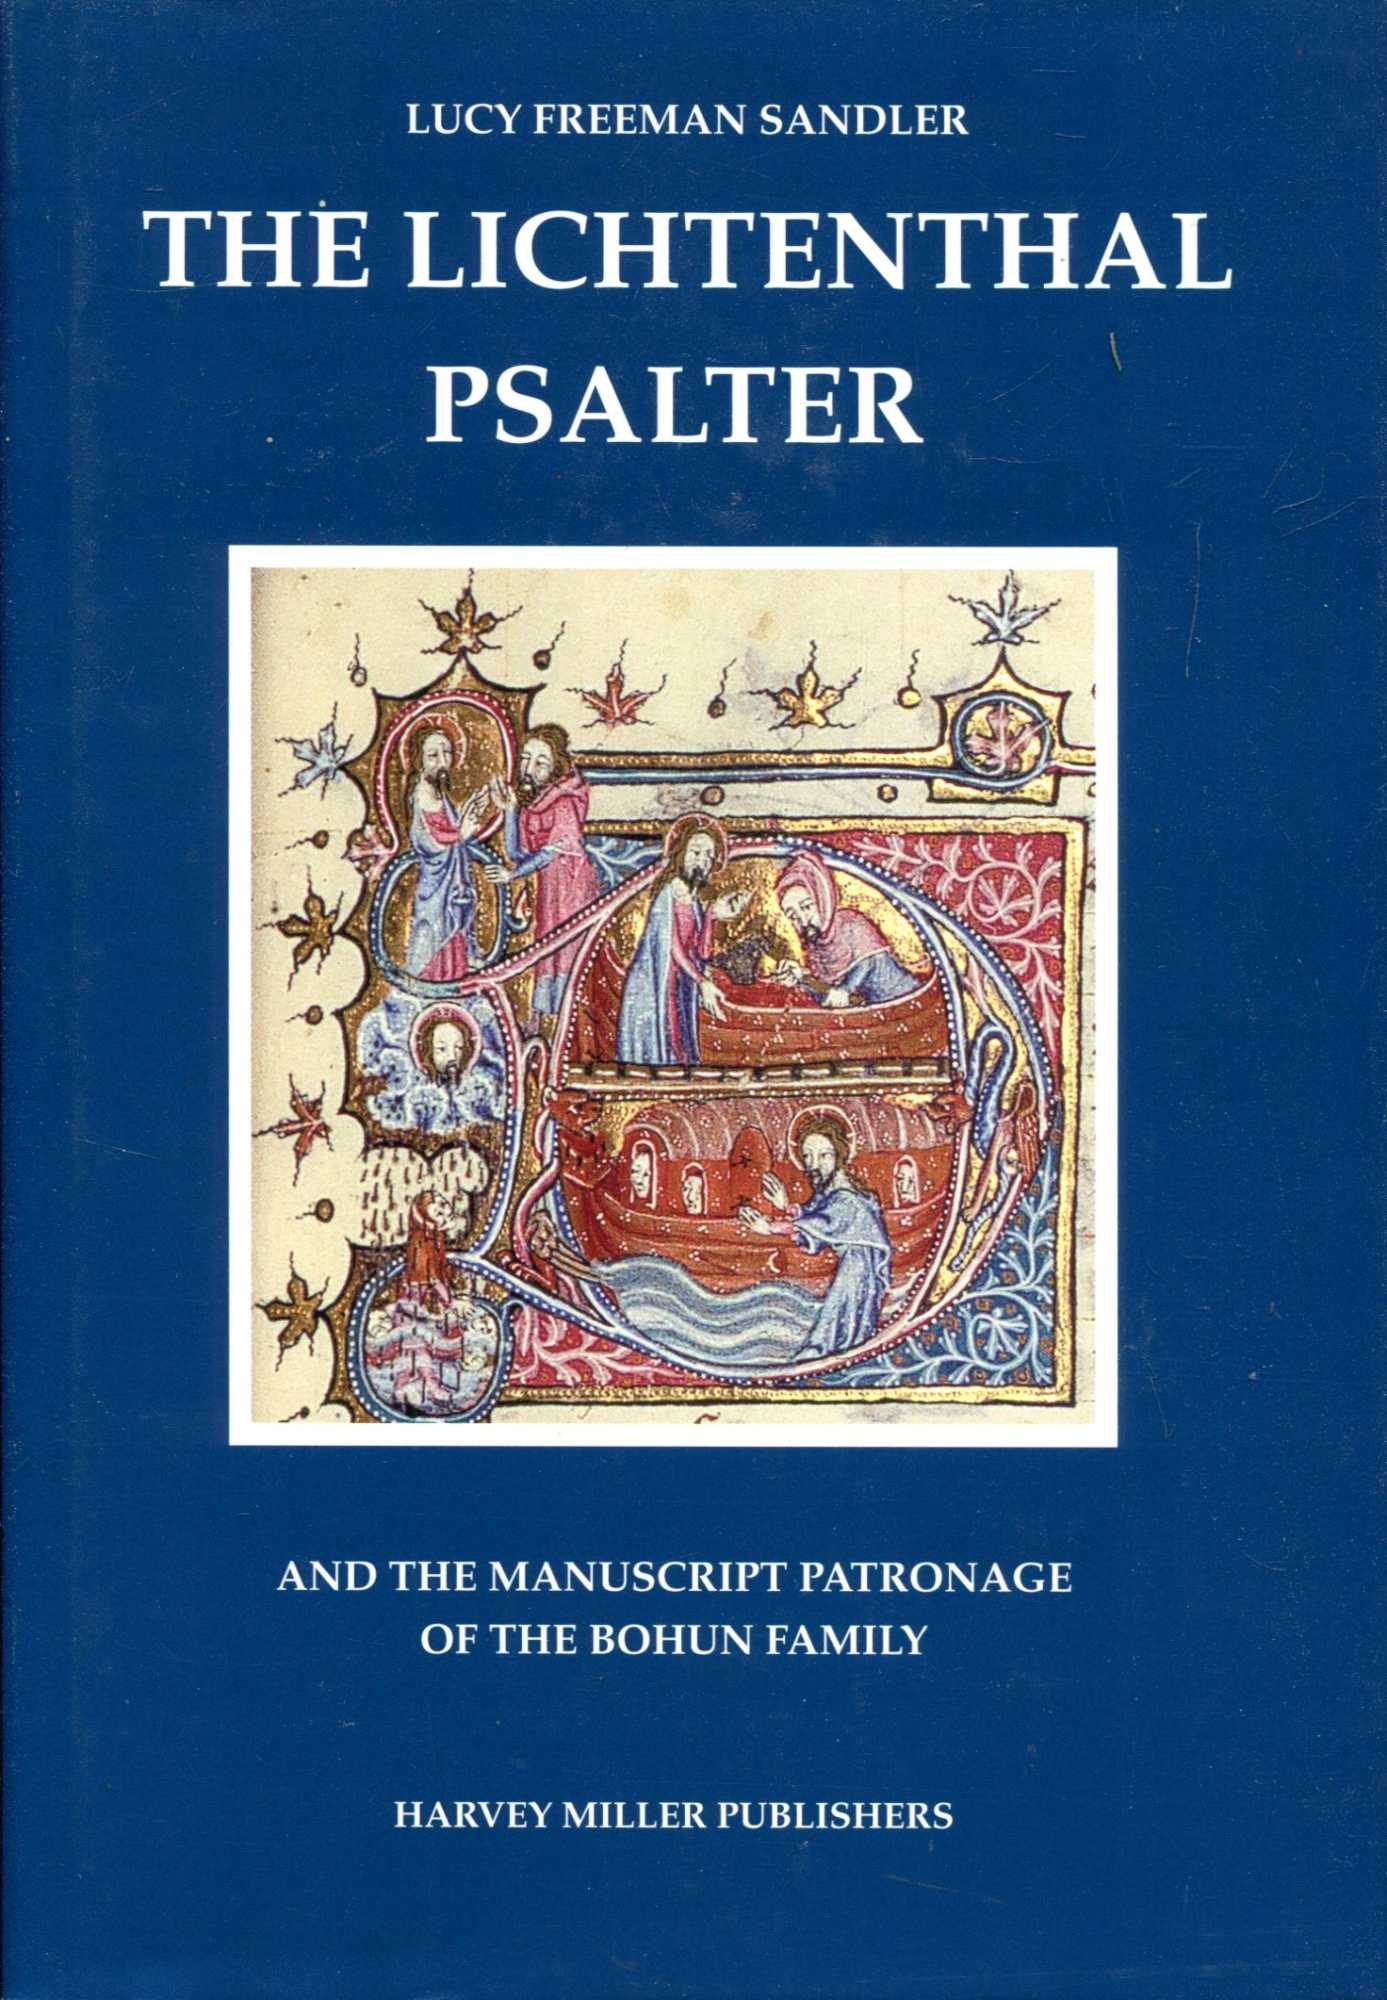 Image for The Lichtenthal Psalter and the Manuscript Patronage of the Bohun Family